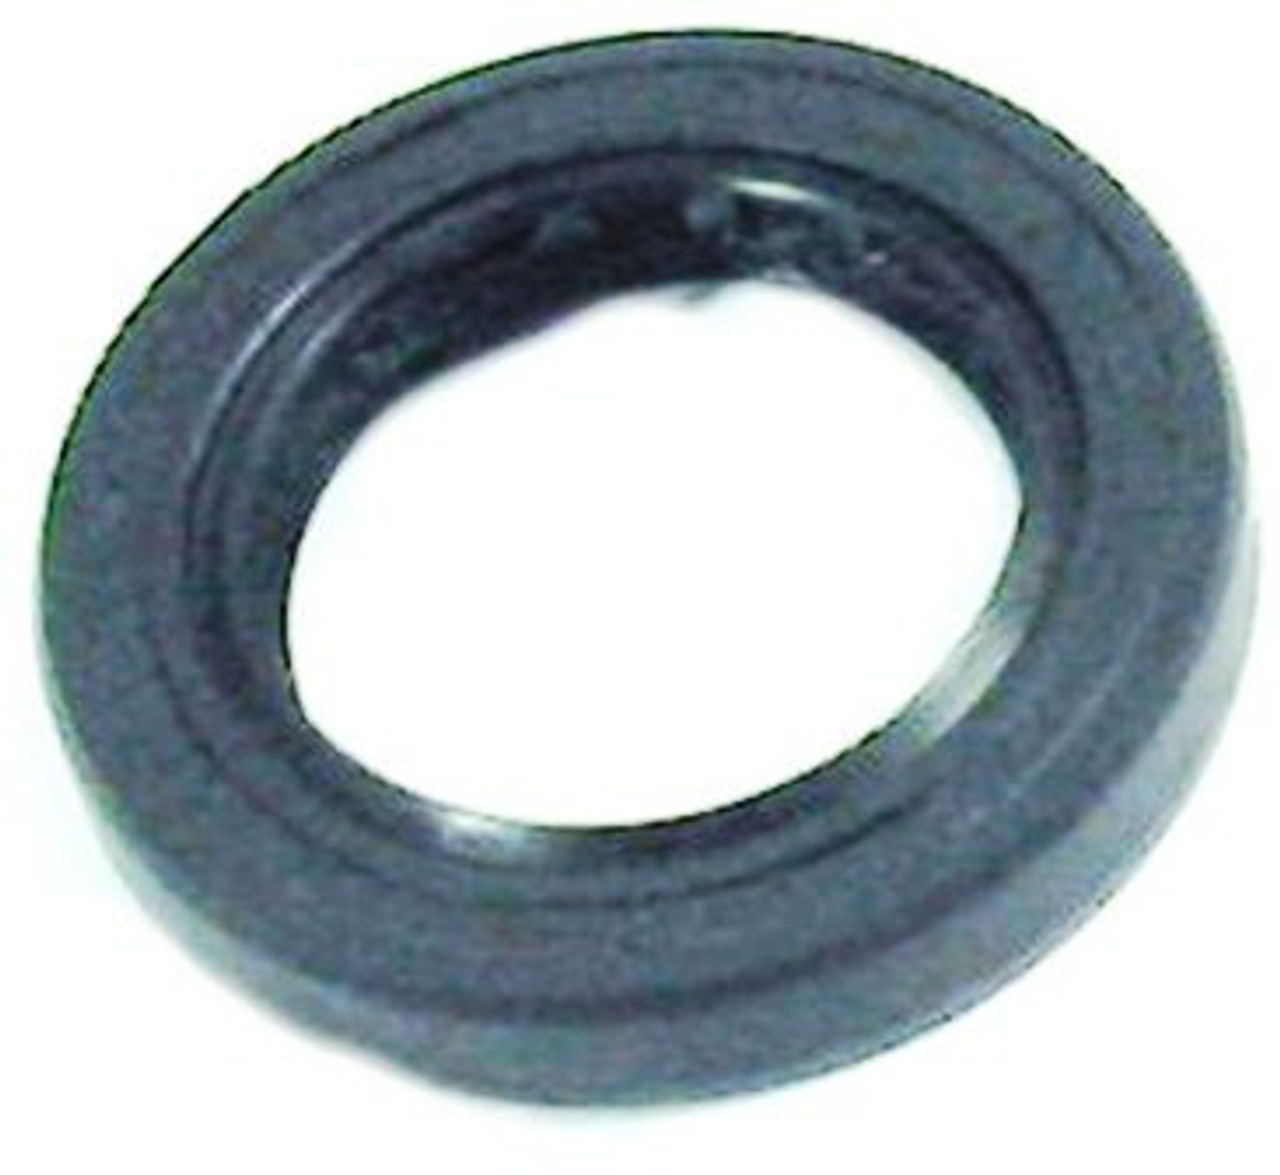 Hobart Hcm 300 & 450 Motor Shaft Seal 00-122523